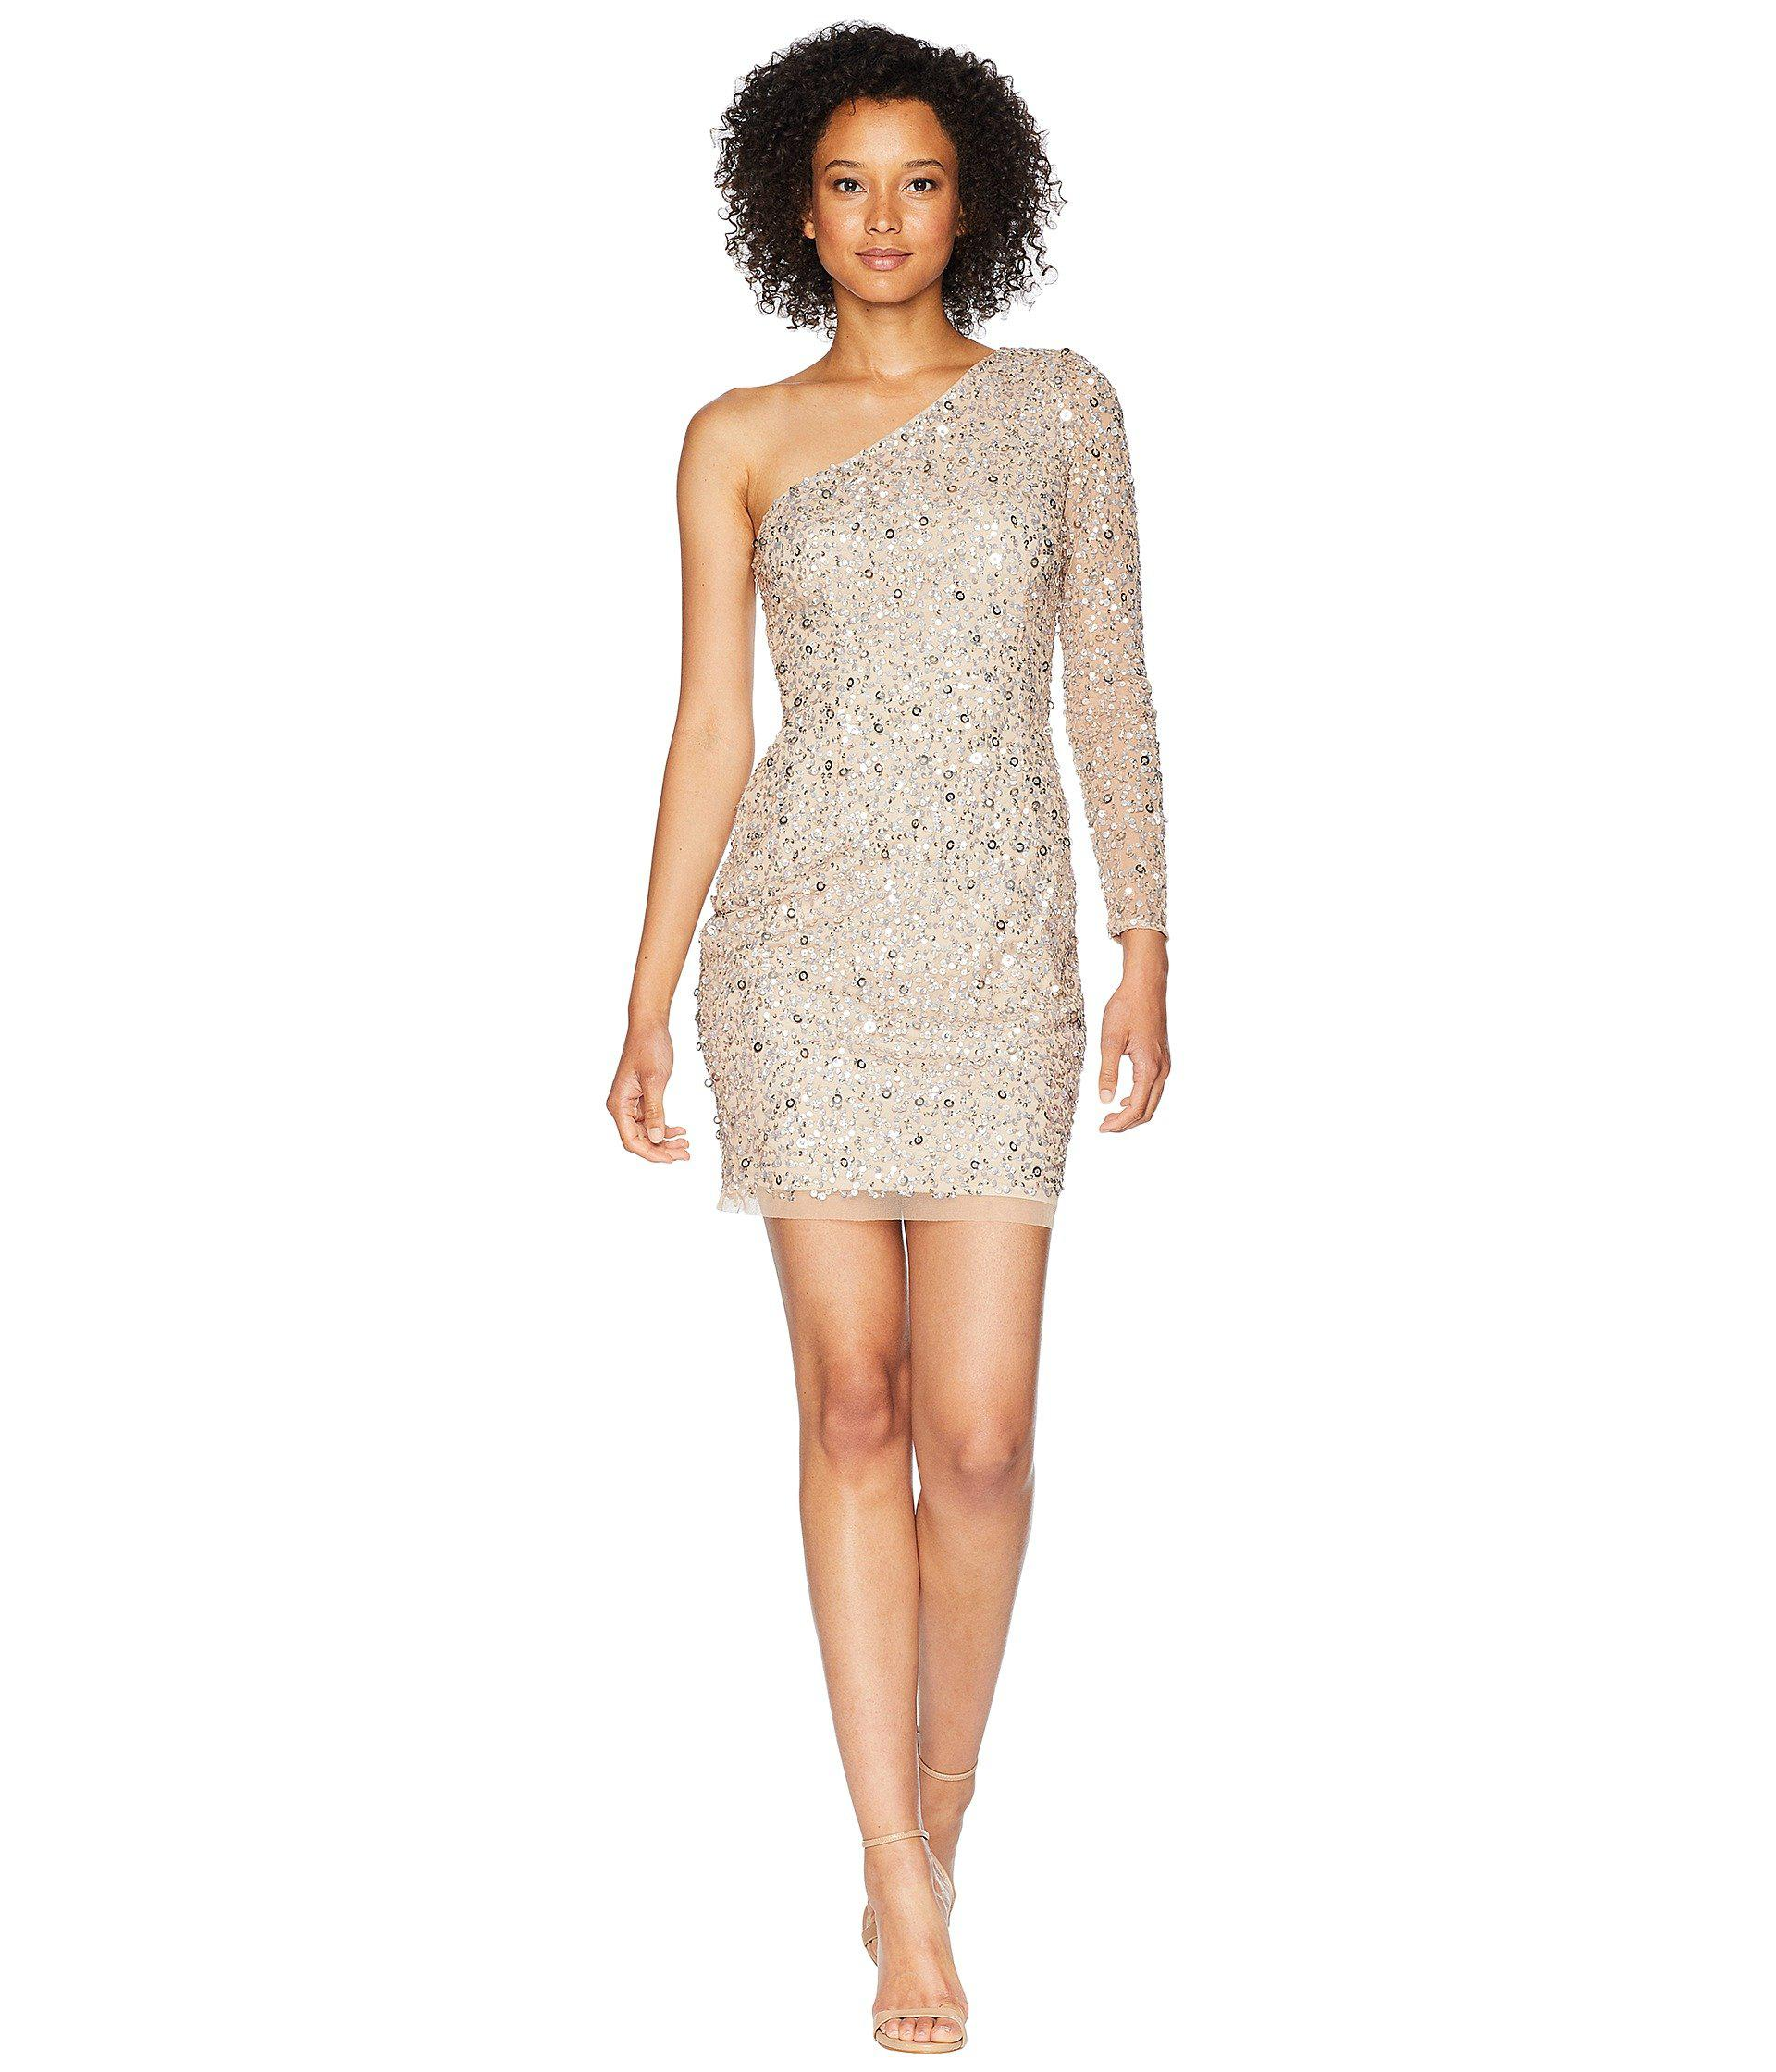 7dfd712f Lyst - Adrianna Papell One Shoulder Fully Beaded Cocktail Dress ...